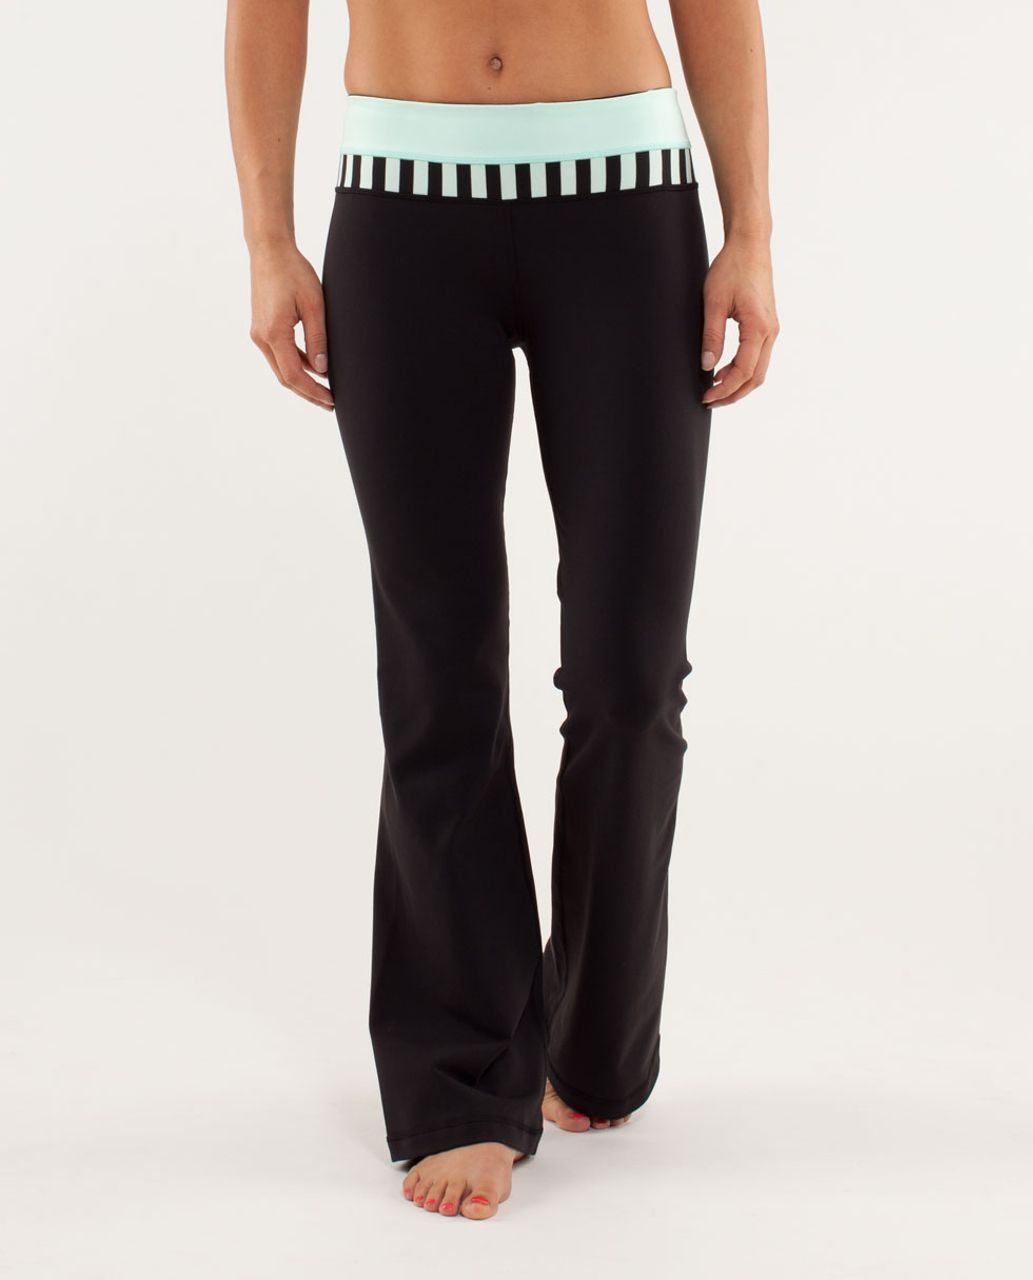 Lululemon Groove Pant *New (Regular) - Black / Mint Moment / Sea Stripe Mint Moment Black